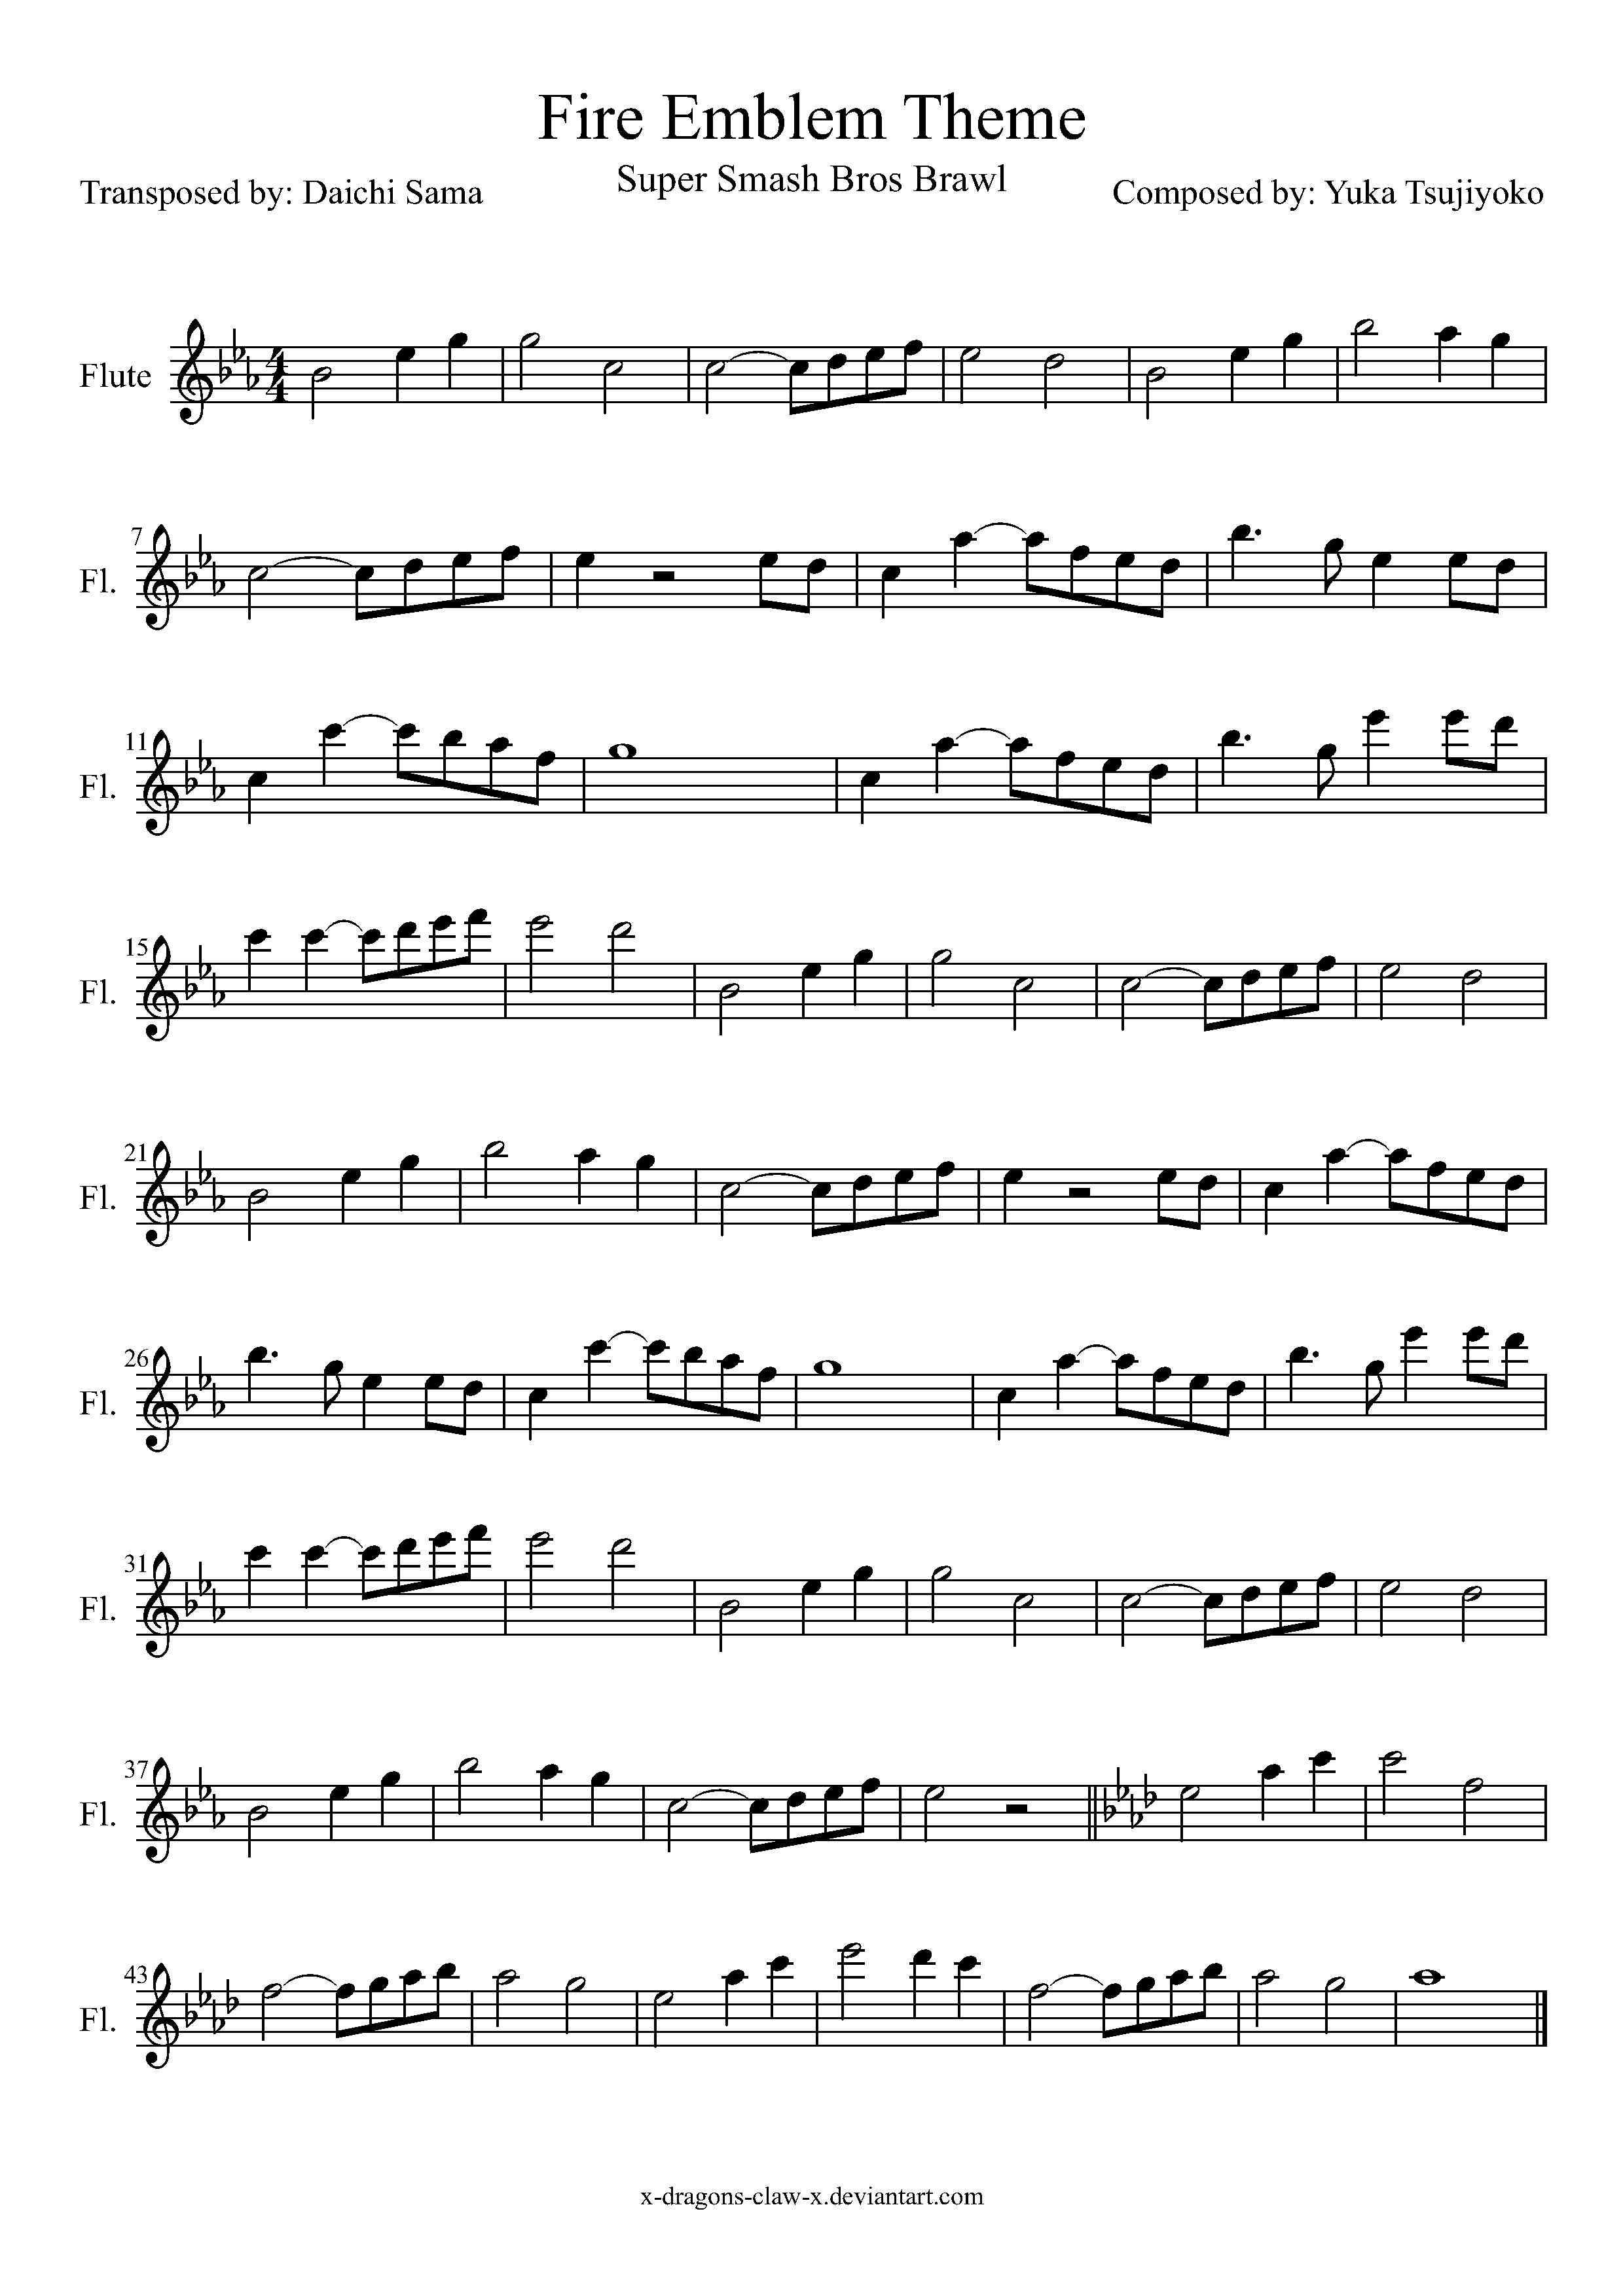 b657e4933867a63c98a7c557081cce9a ssbb fire emblem theme flute sheet music by drakon thedragon,Flute Meme Song